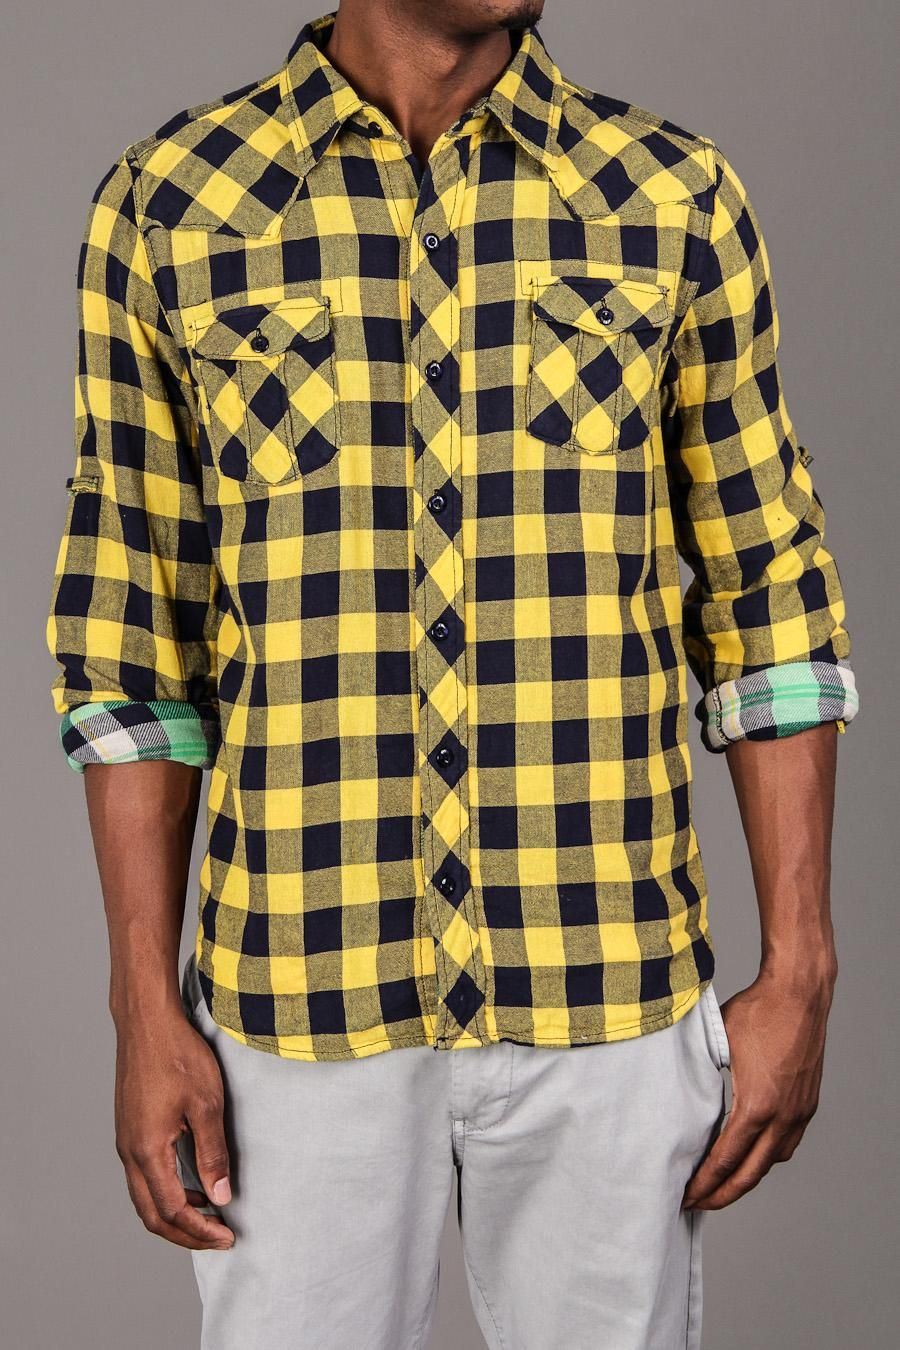 Gangster flannel shirts  Lumber Plaid Shirt  by Cohesive  Menus Tops  Pinterest